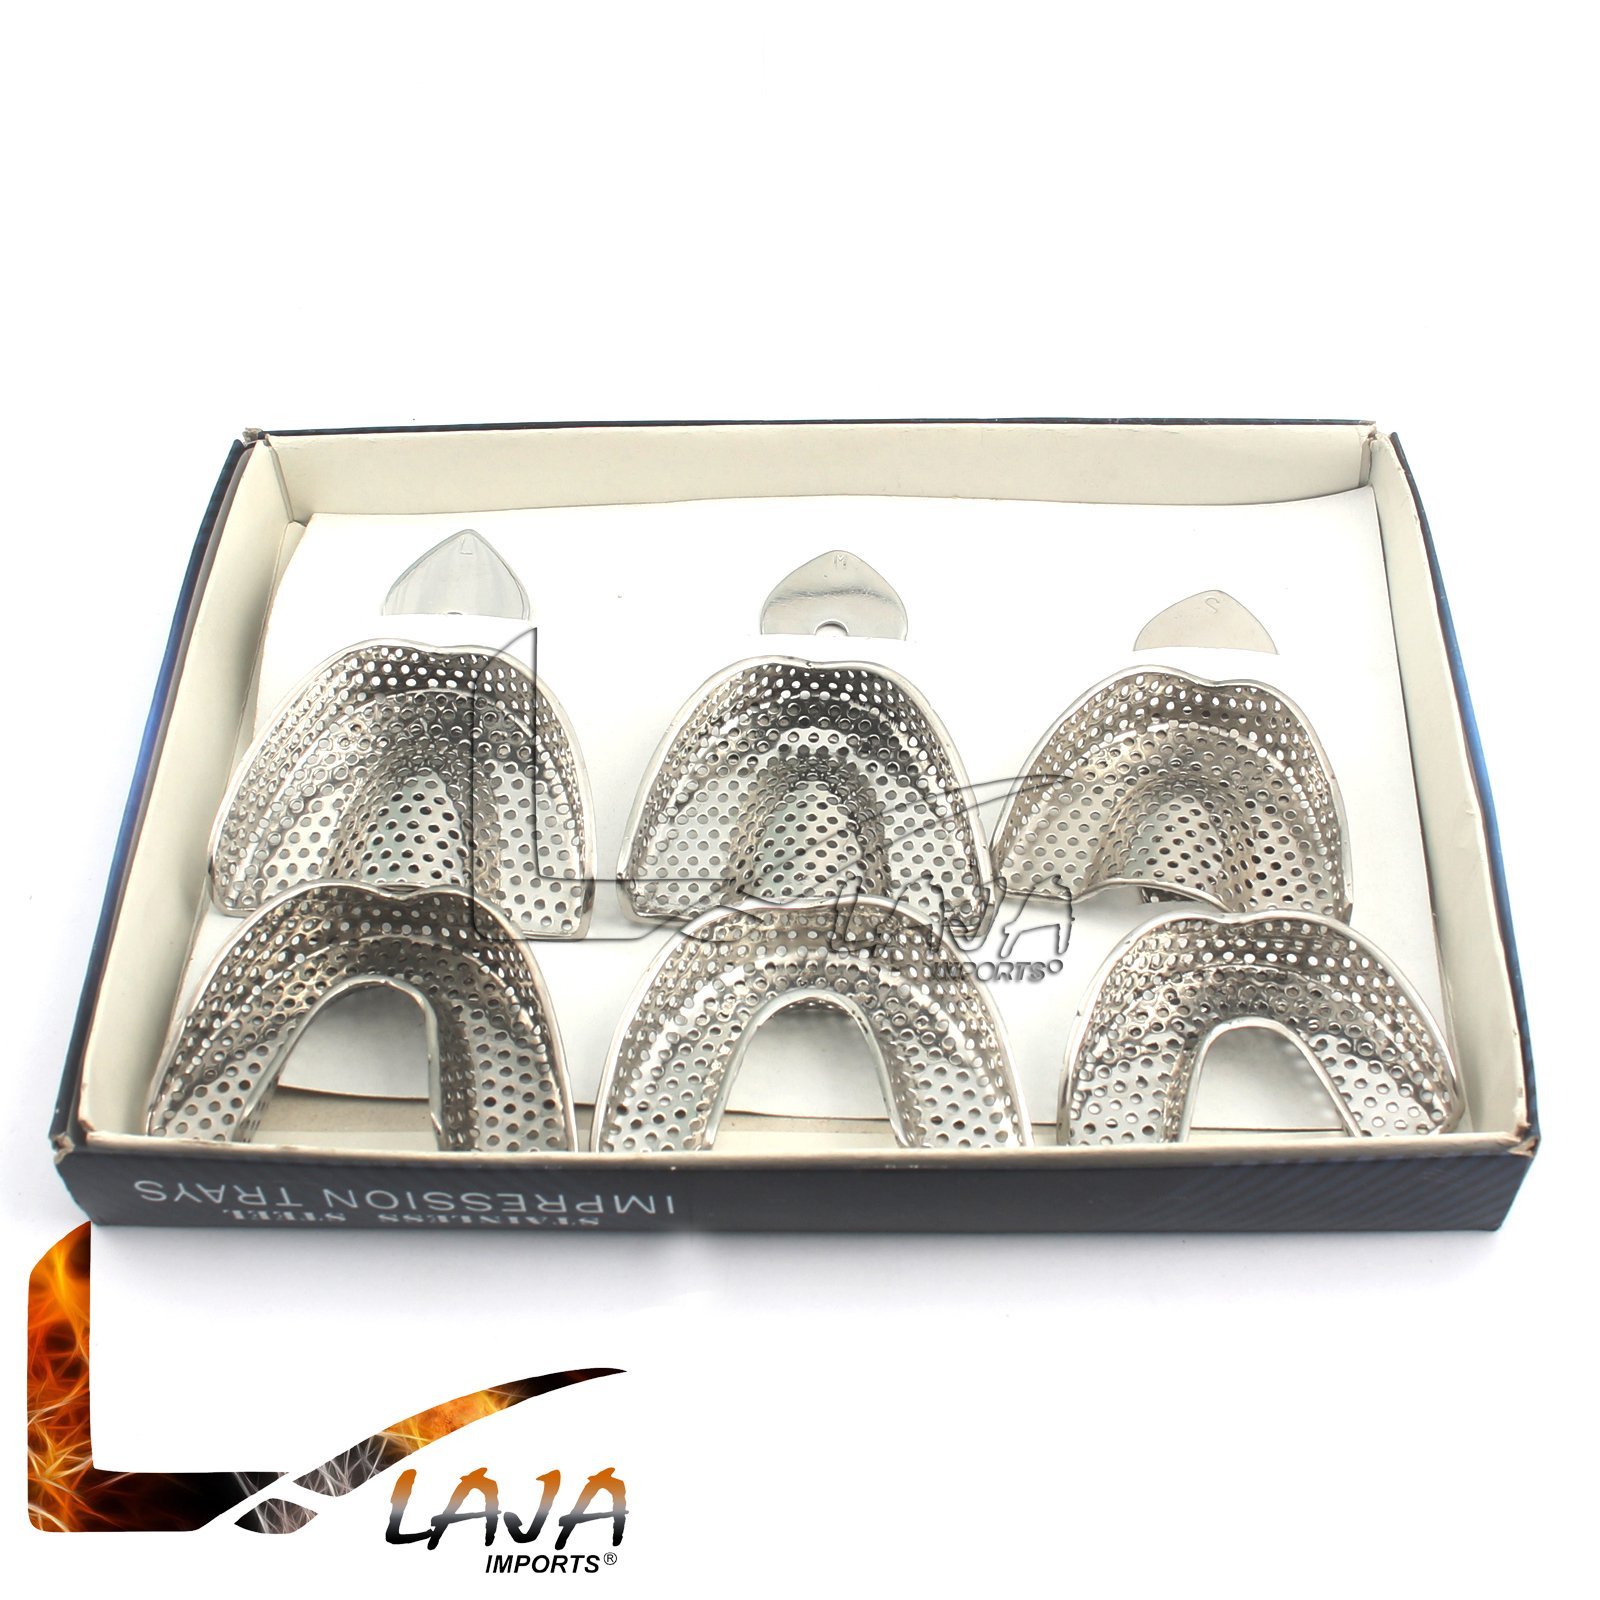 LAJA IMPORTS DENTAL ORTHO IMPRESSION TRAYS AUTOCLAVABLE 6 PCS/SET DENTURE INSTRUMENTS